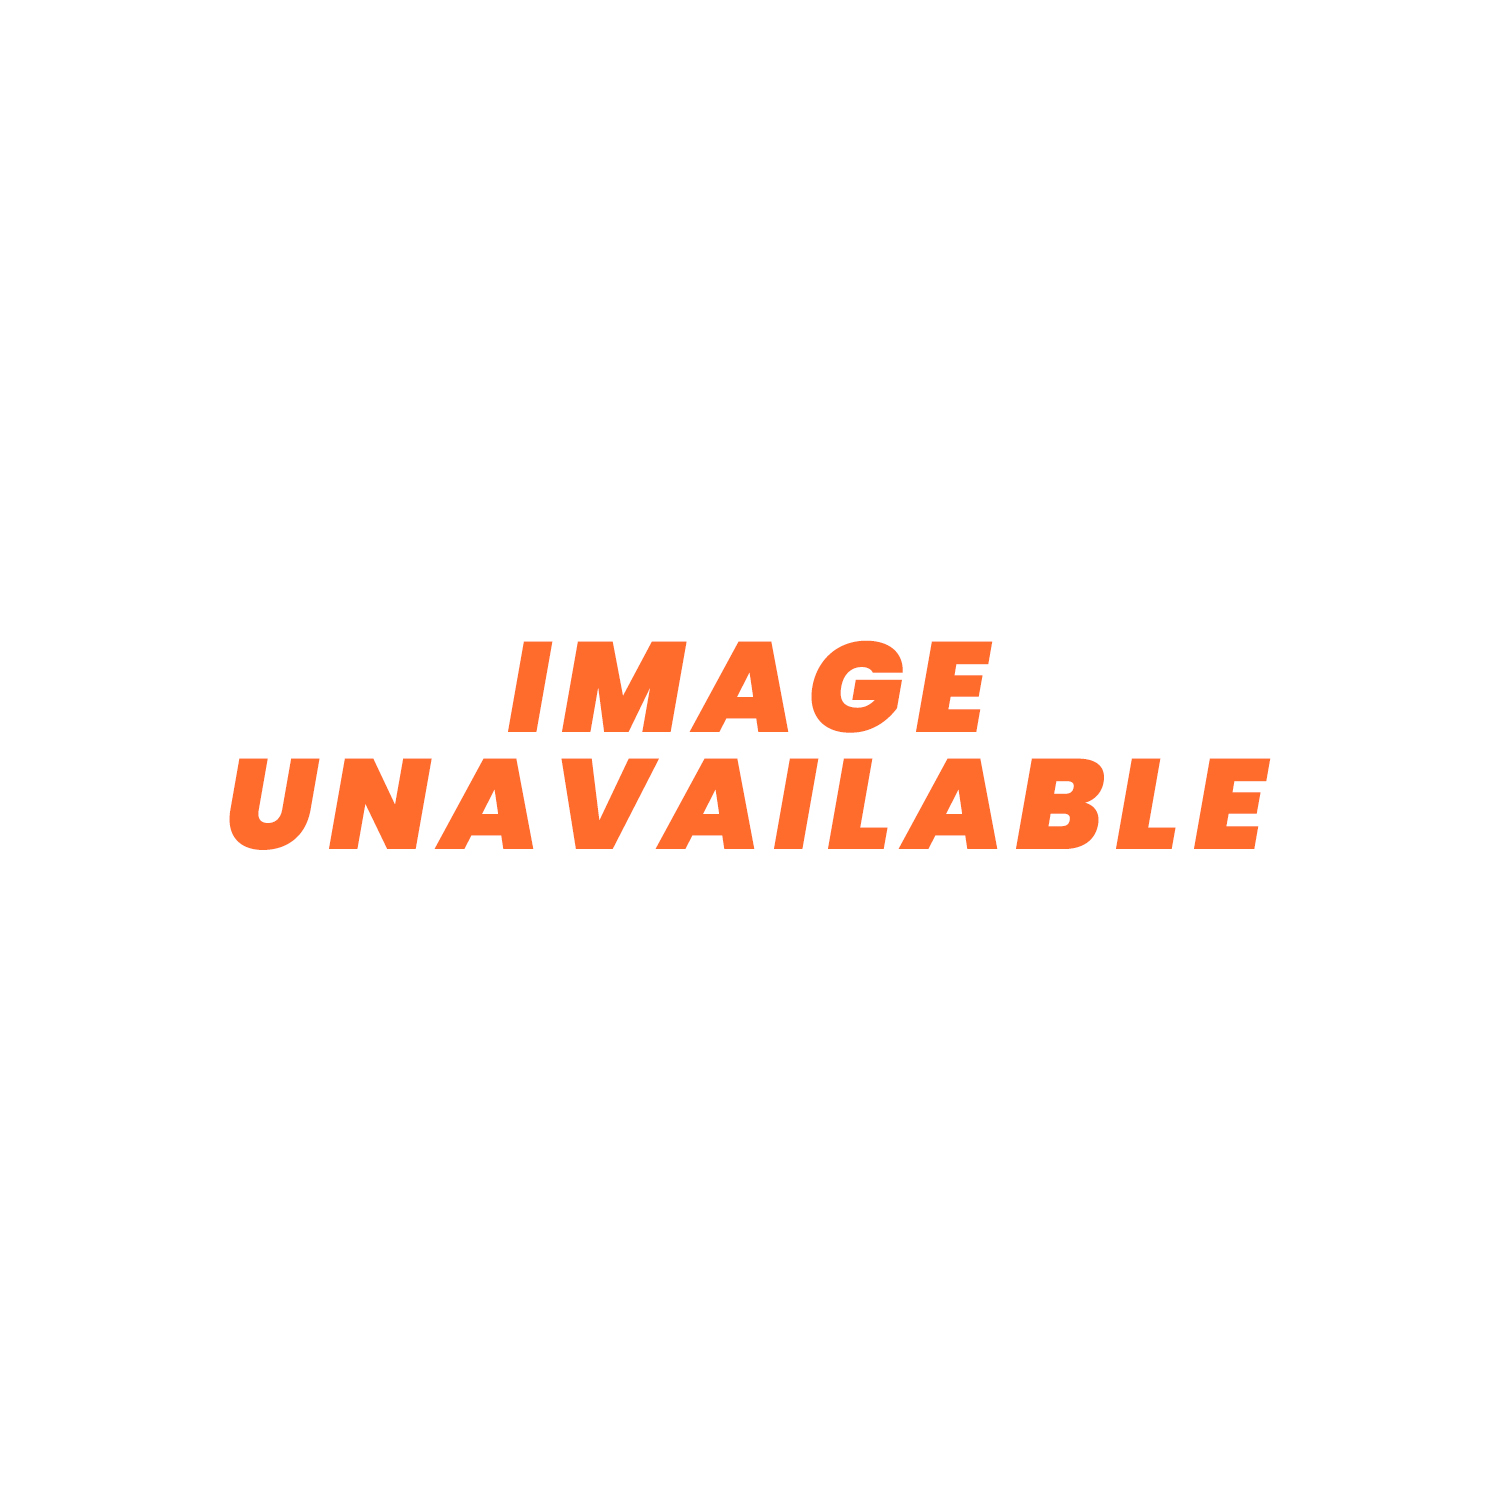 Jubilee 'O' Clip 304 Stainless Steel 7 - 9mm Dia Hose Clamp